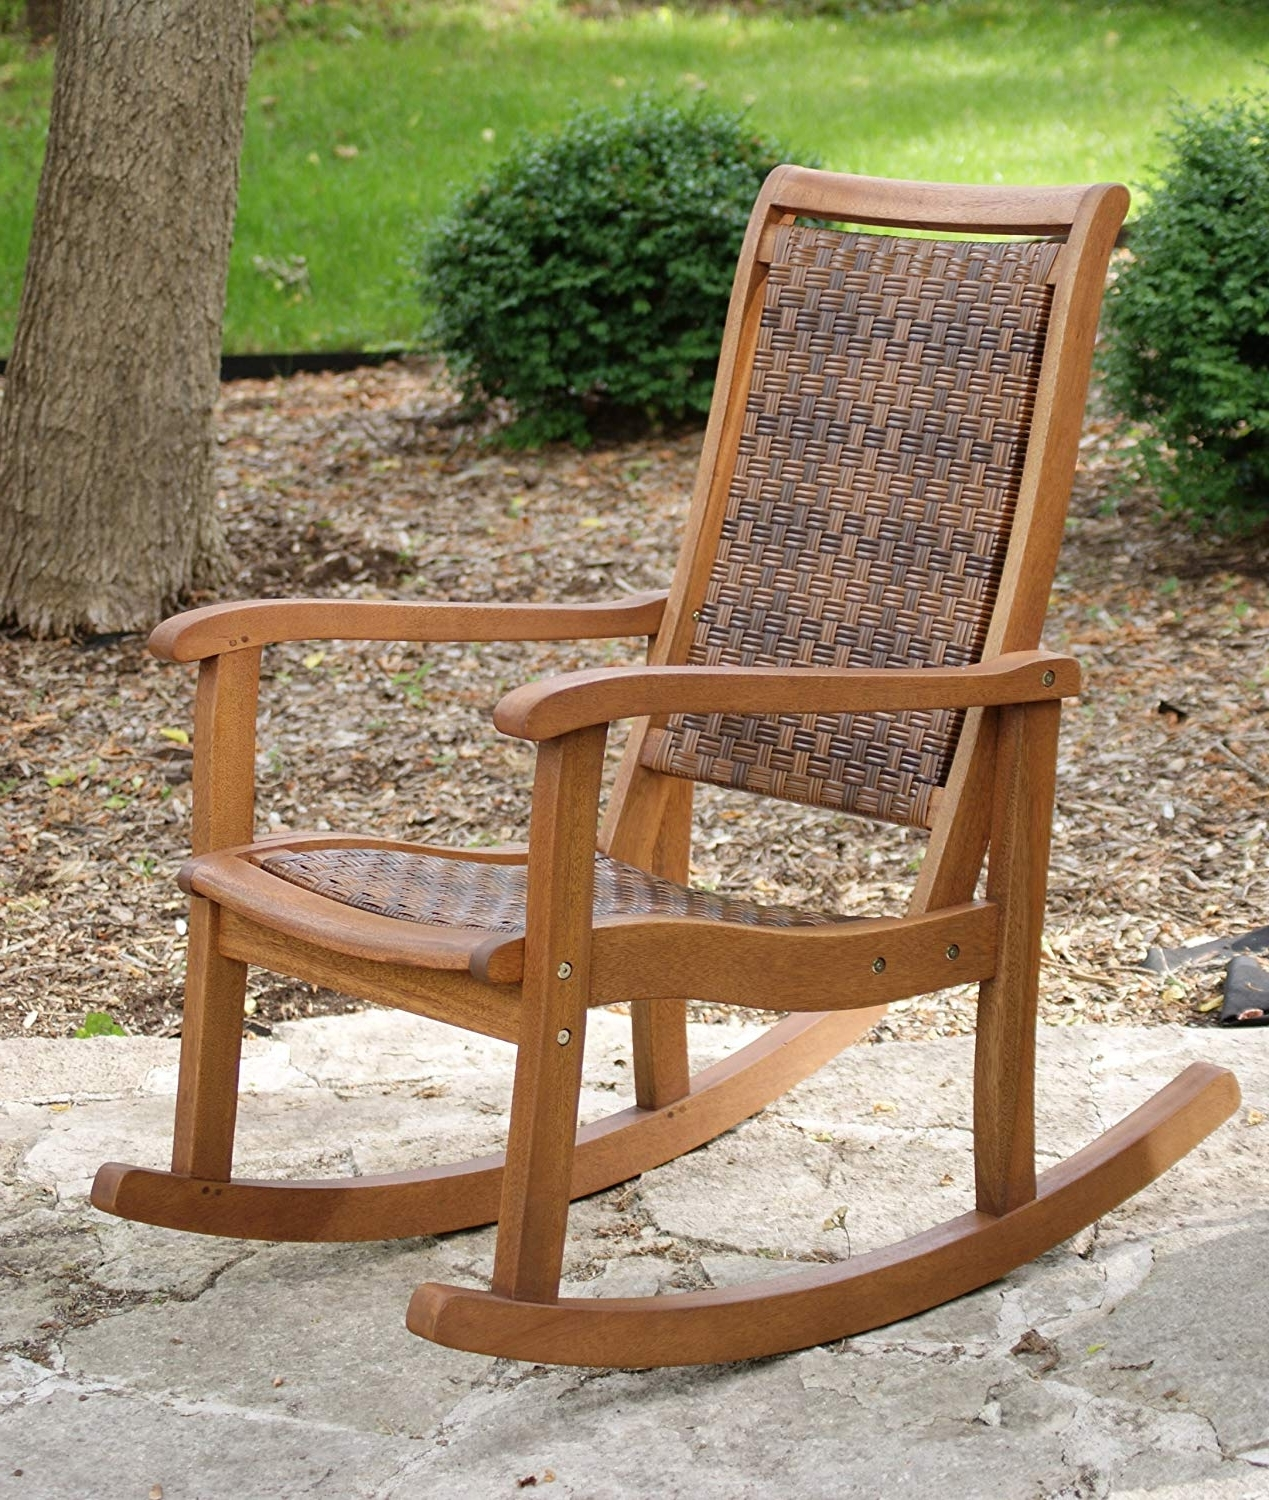 Rattan Outdoor Rocking Chairs Pertaining To Best And Newest Amazon : Outdoor Interiors 21095Rc All Weather Wicker Mocha And (View 7 of 15)